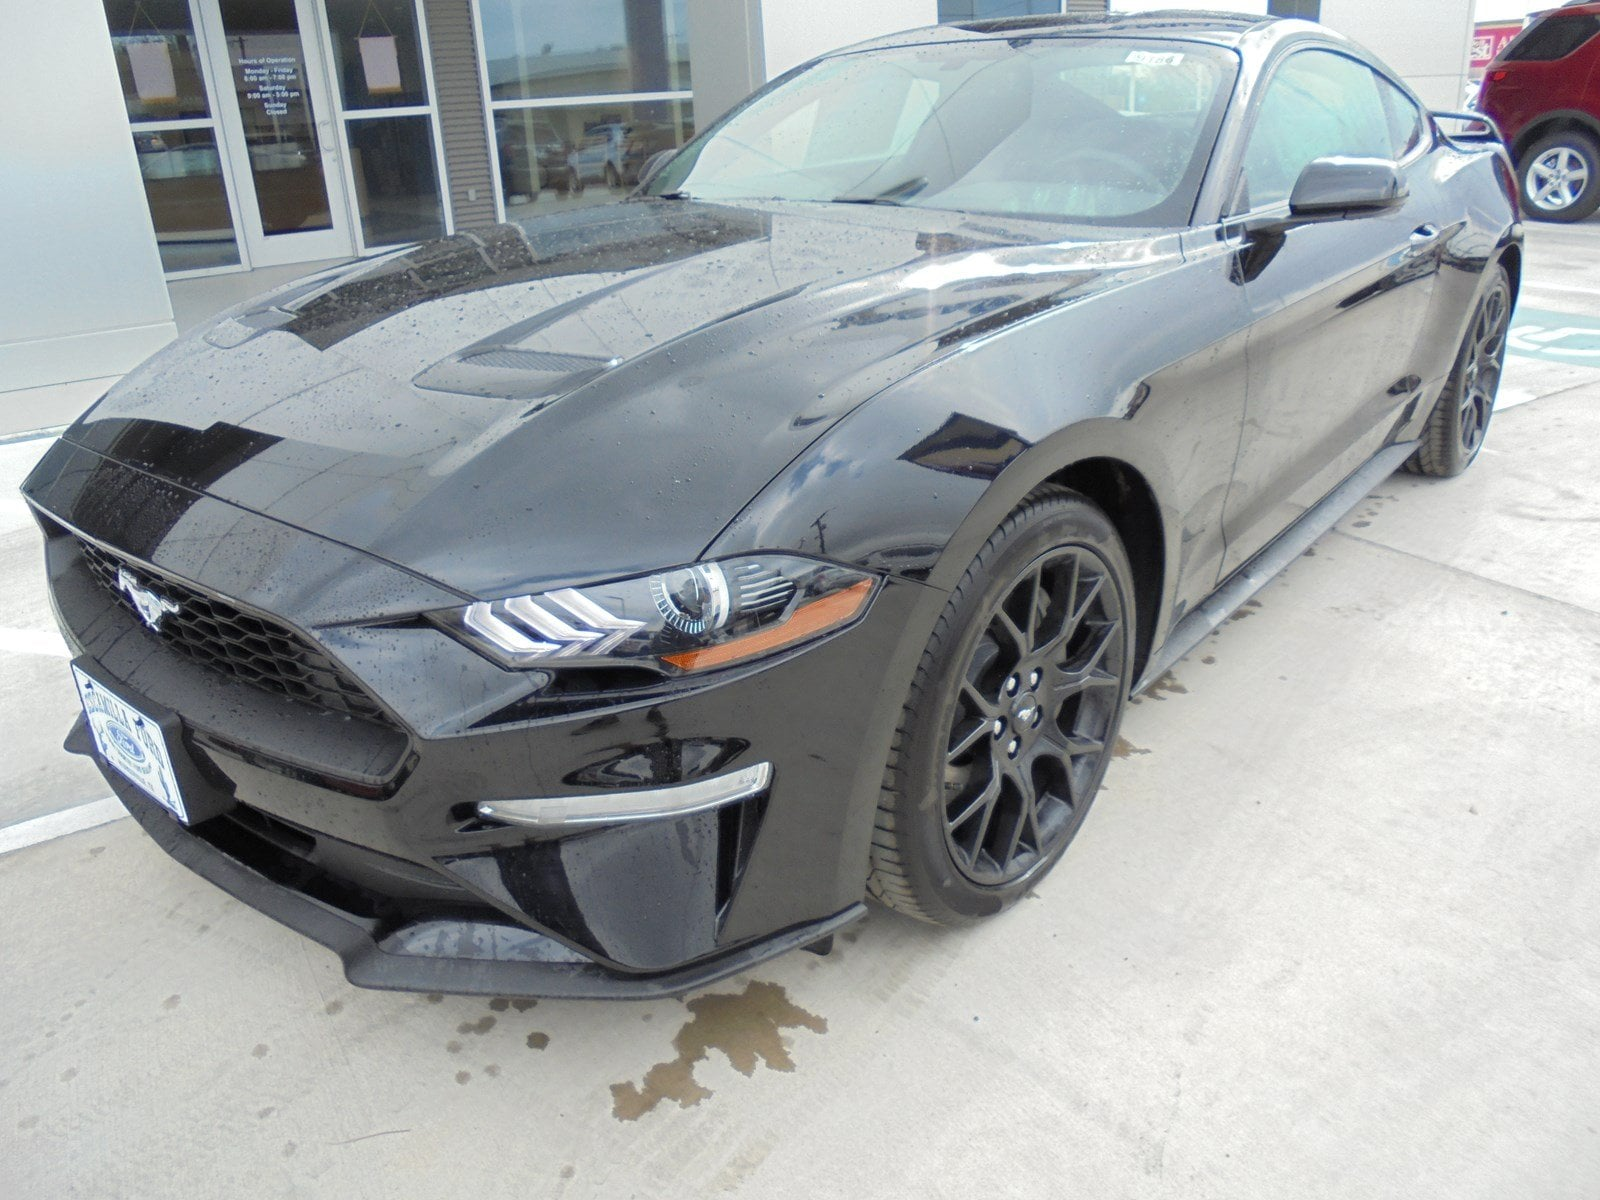 Cars For Sale Laredo Tx >> New Ford Mustang for Sale in Laredo, TX - CarGurus